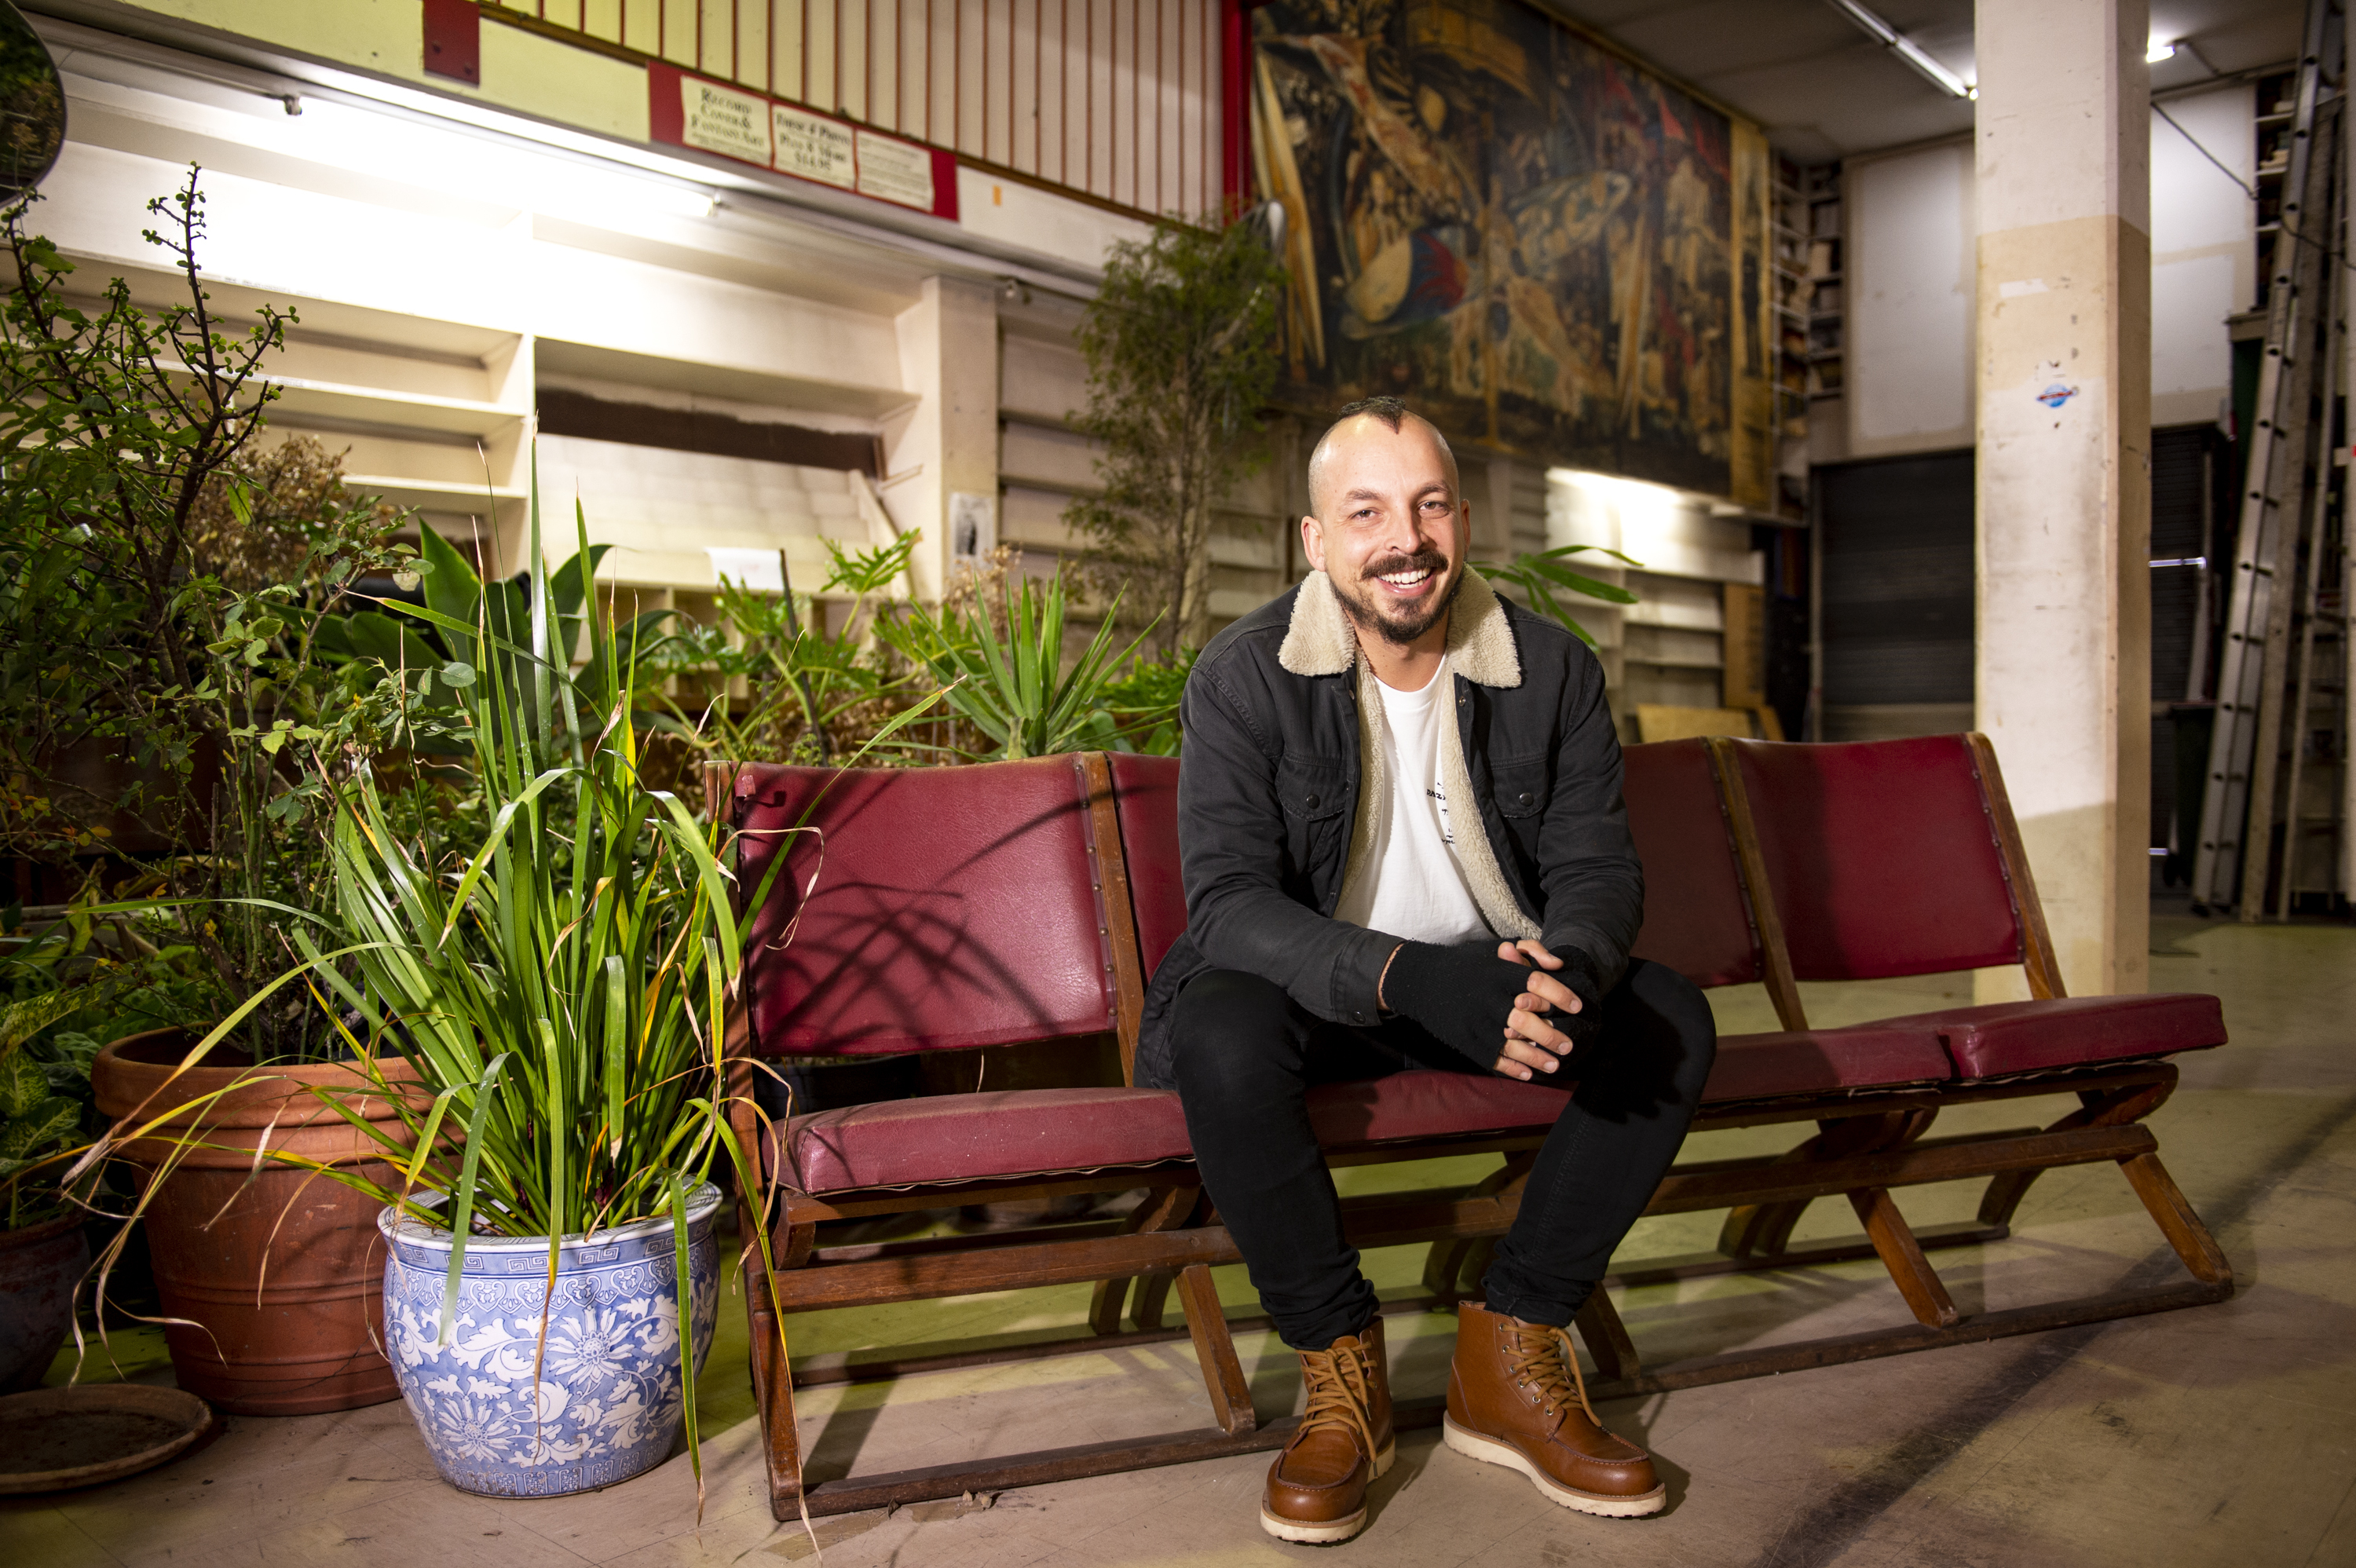 Commune's founder Sam Ali tells us how to make the most of Newtown after dark